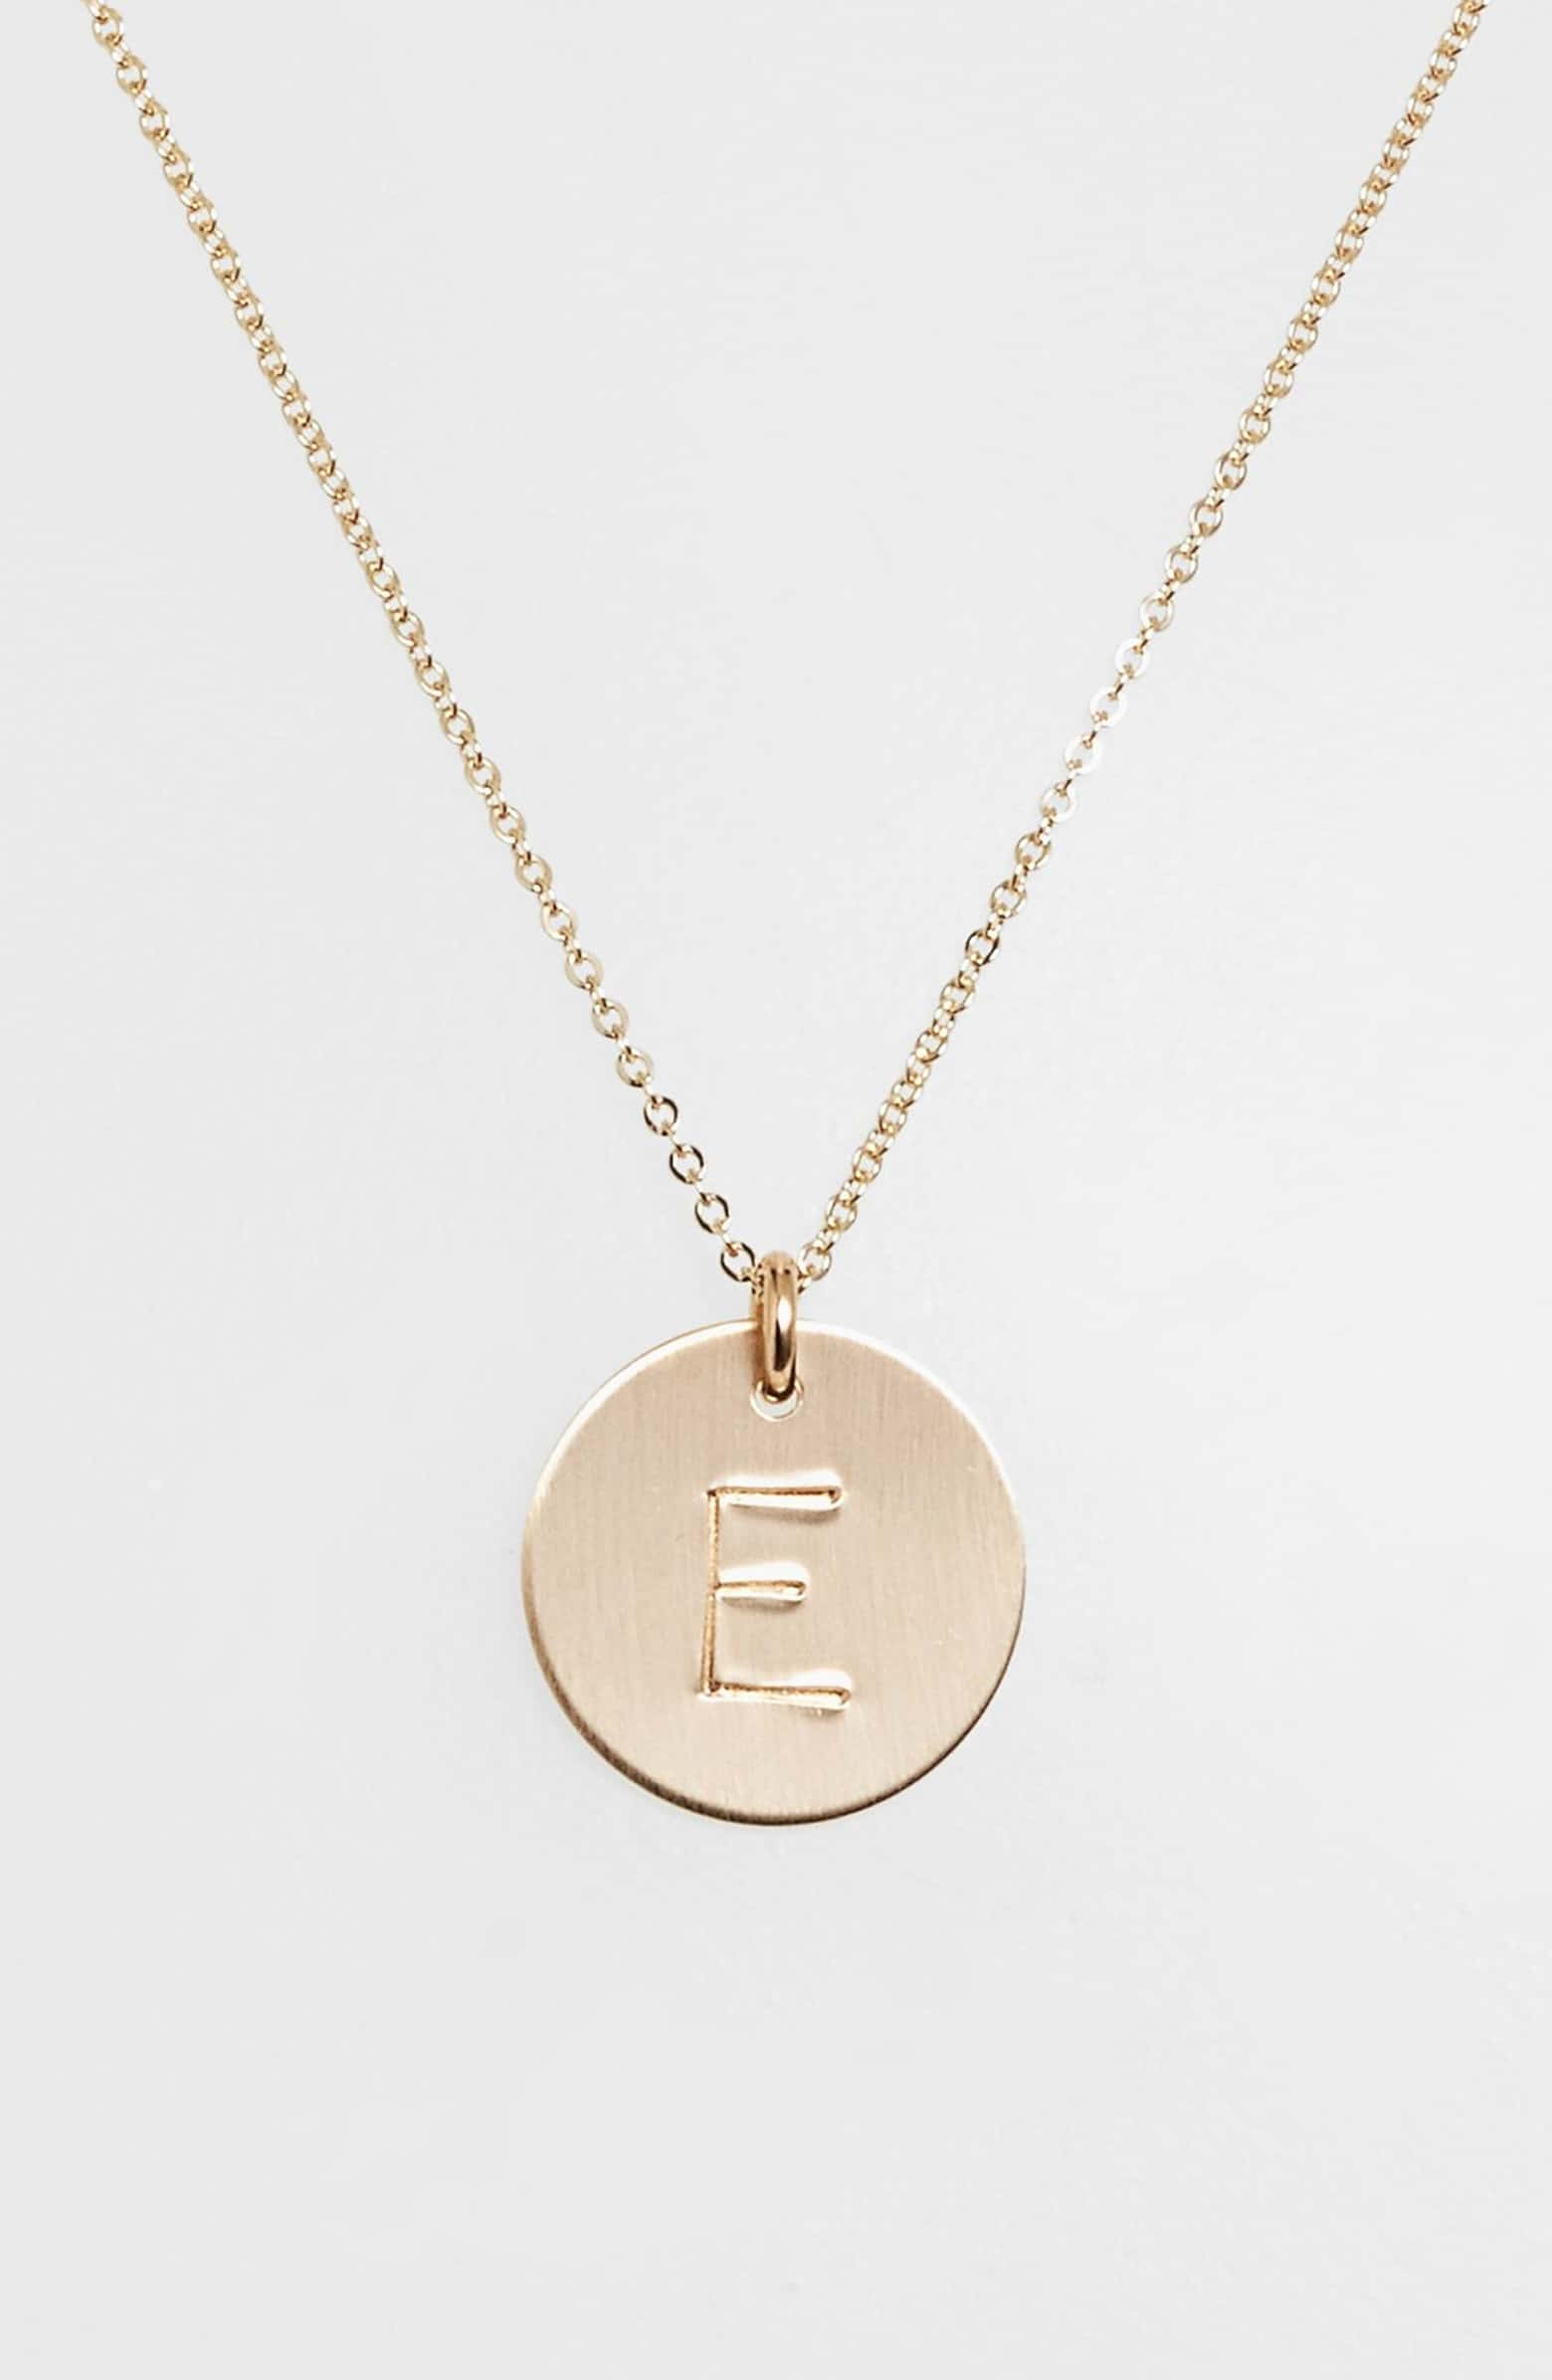 Nashelle's gold initial necklace